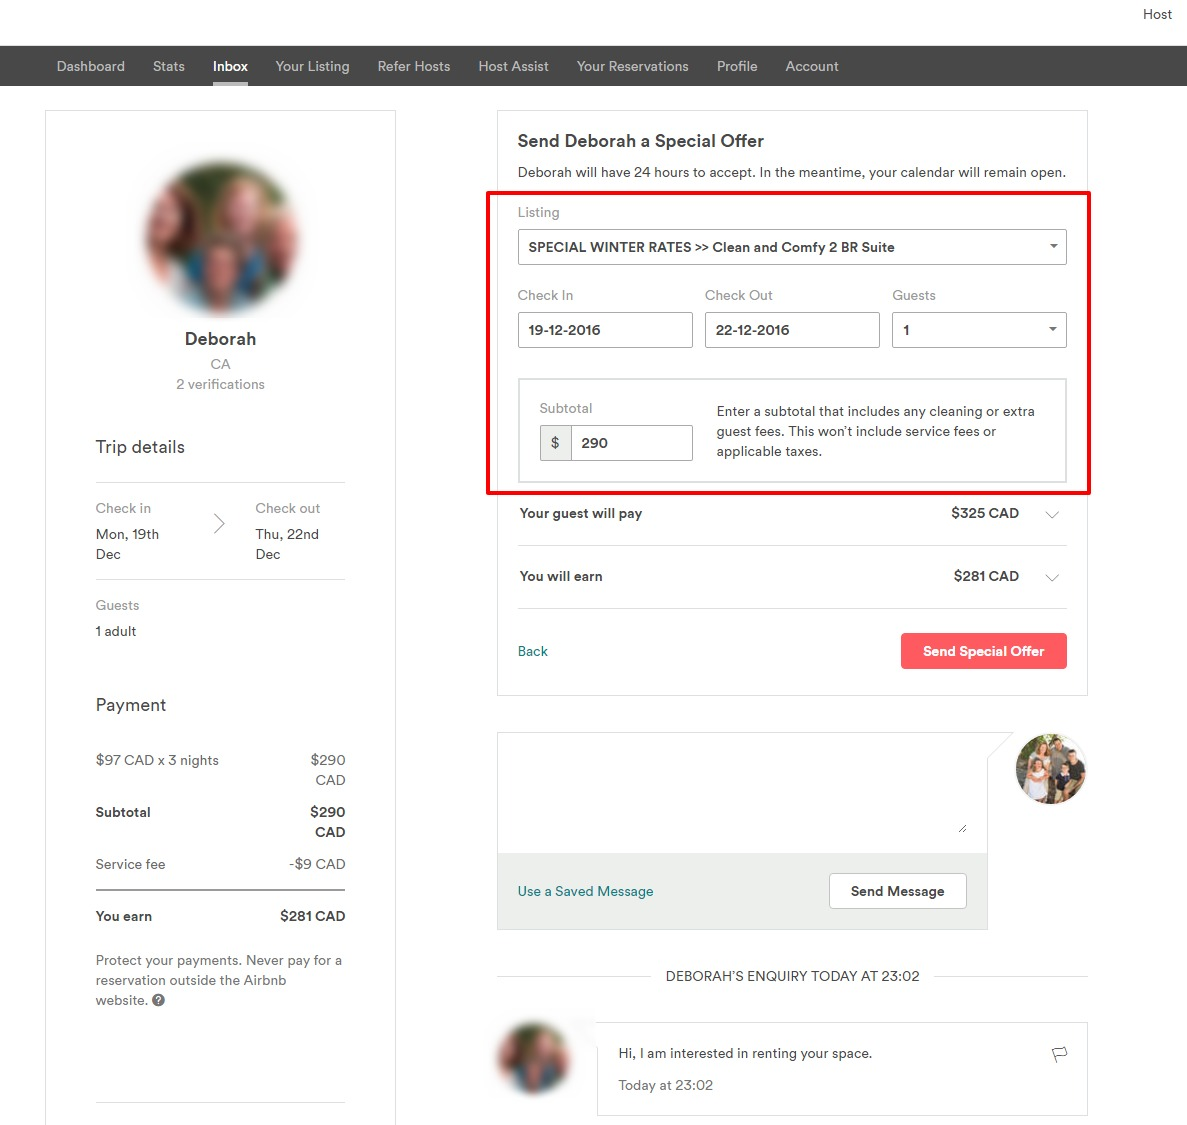 Special Offers: A Community Help Guide [UPDATED] - Airbnb